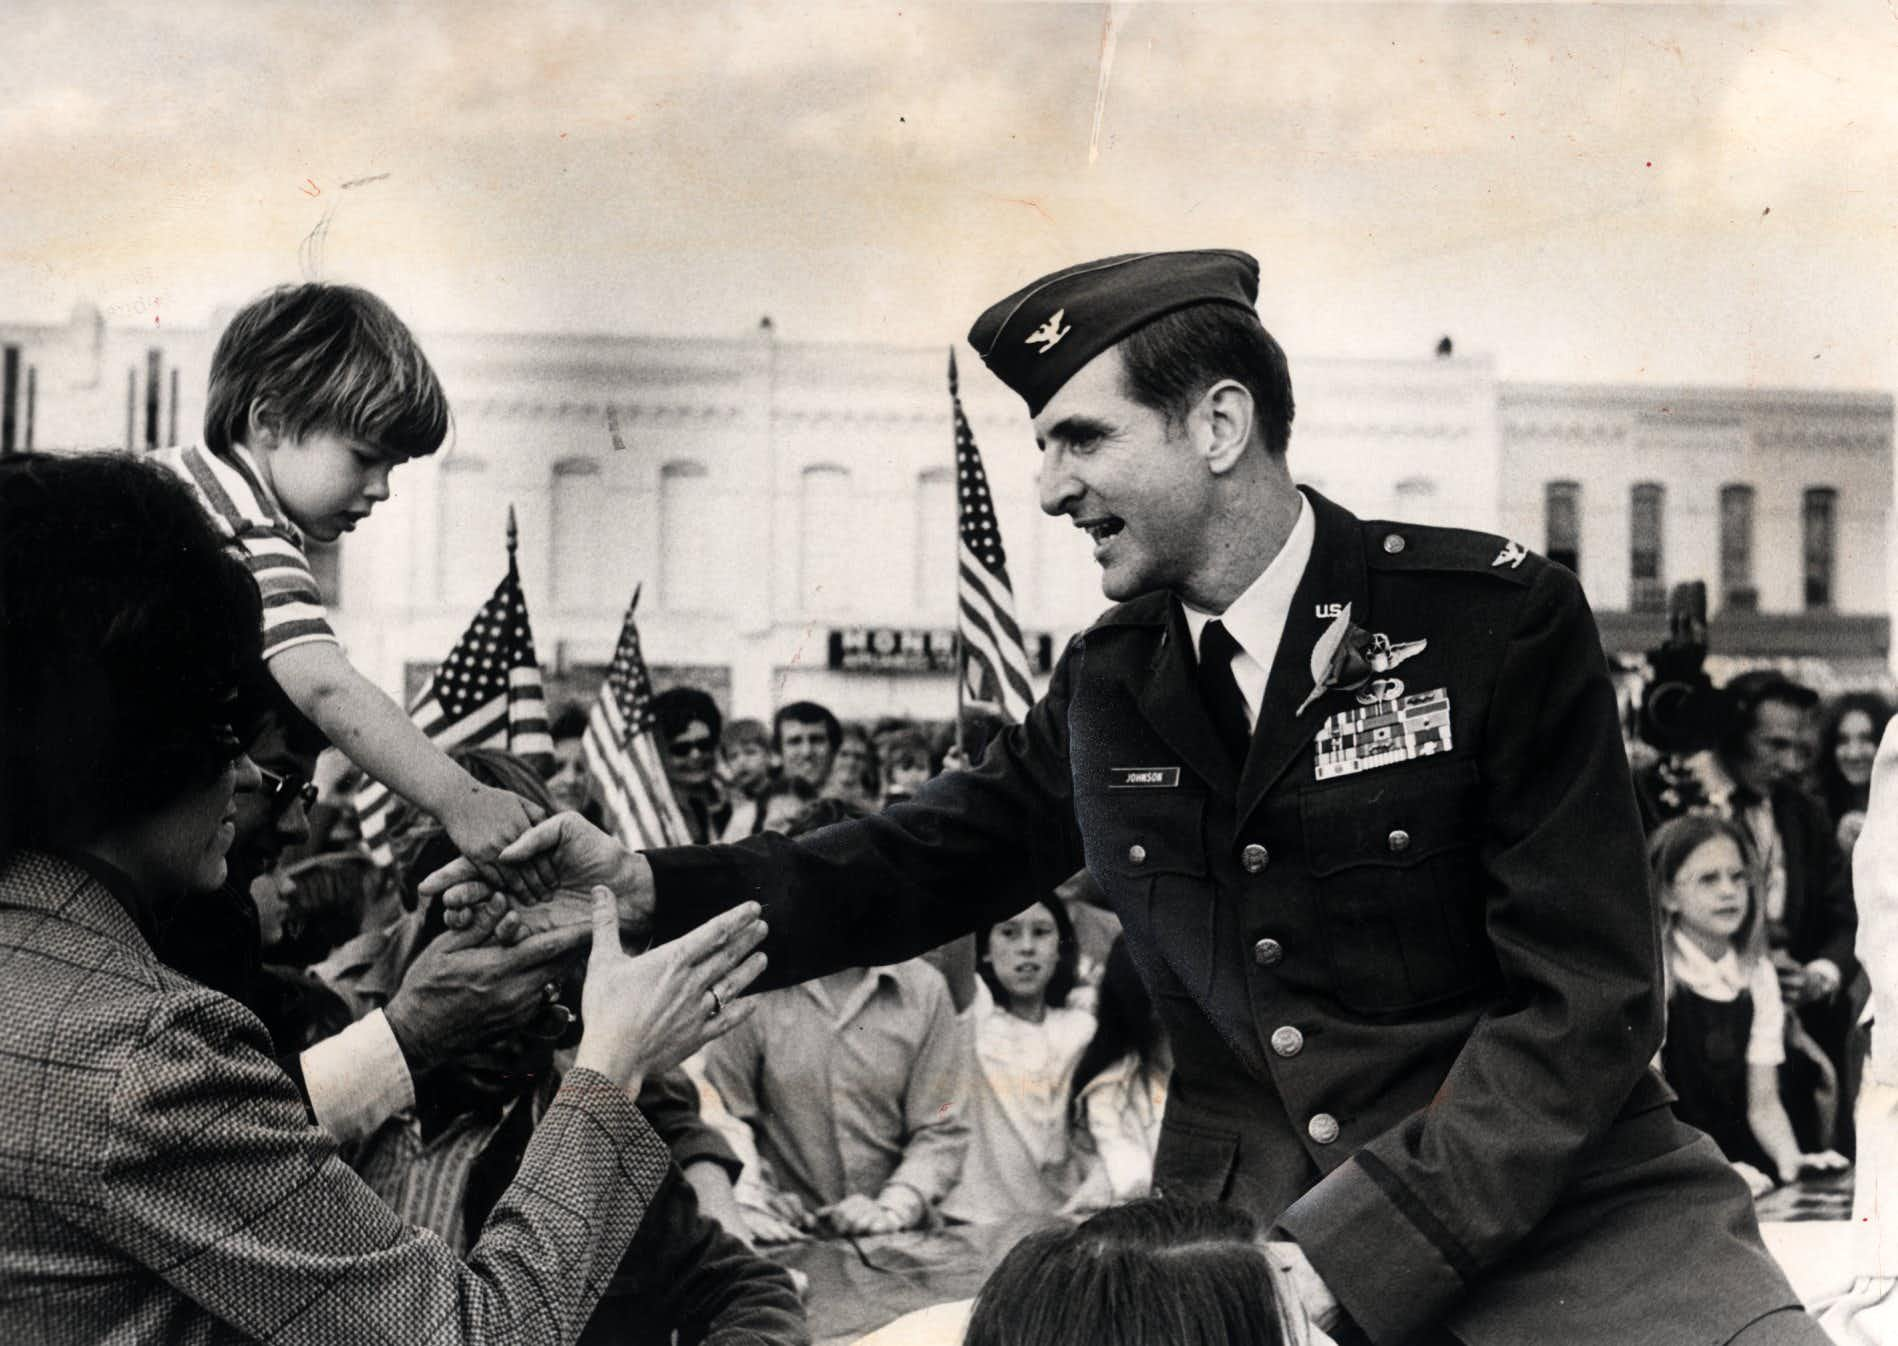 Future congressman and Air Force Col. Sam Johnson at his homecoming in Plano on March 6, 1973, after being released from seven years of captivity in Vietnam.